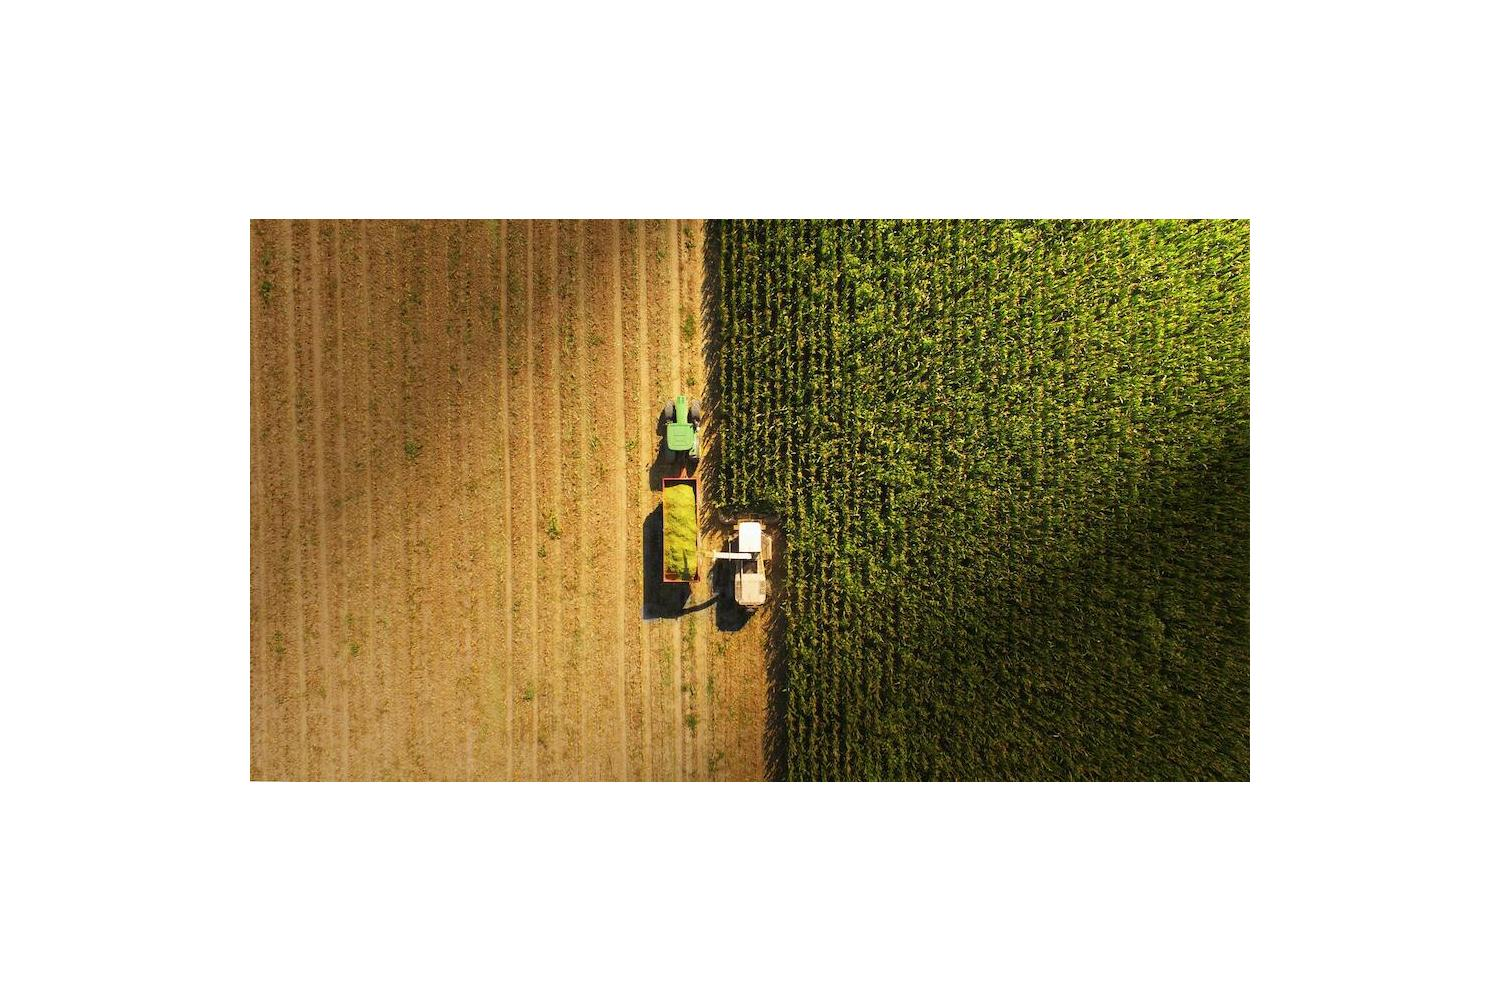 field-with-tractor